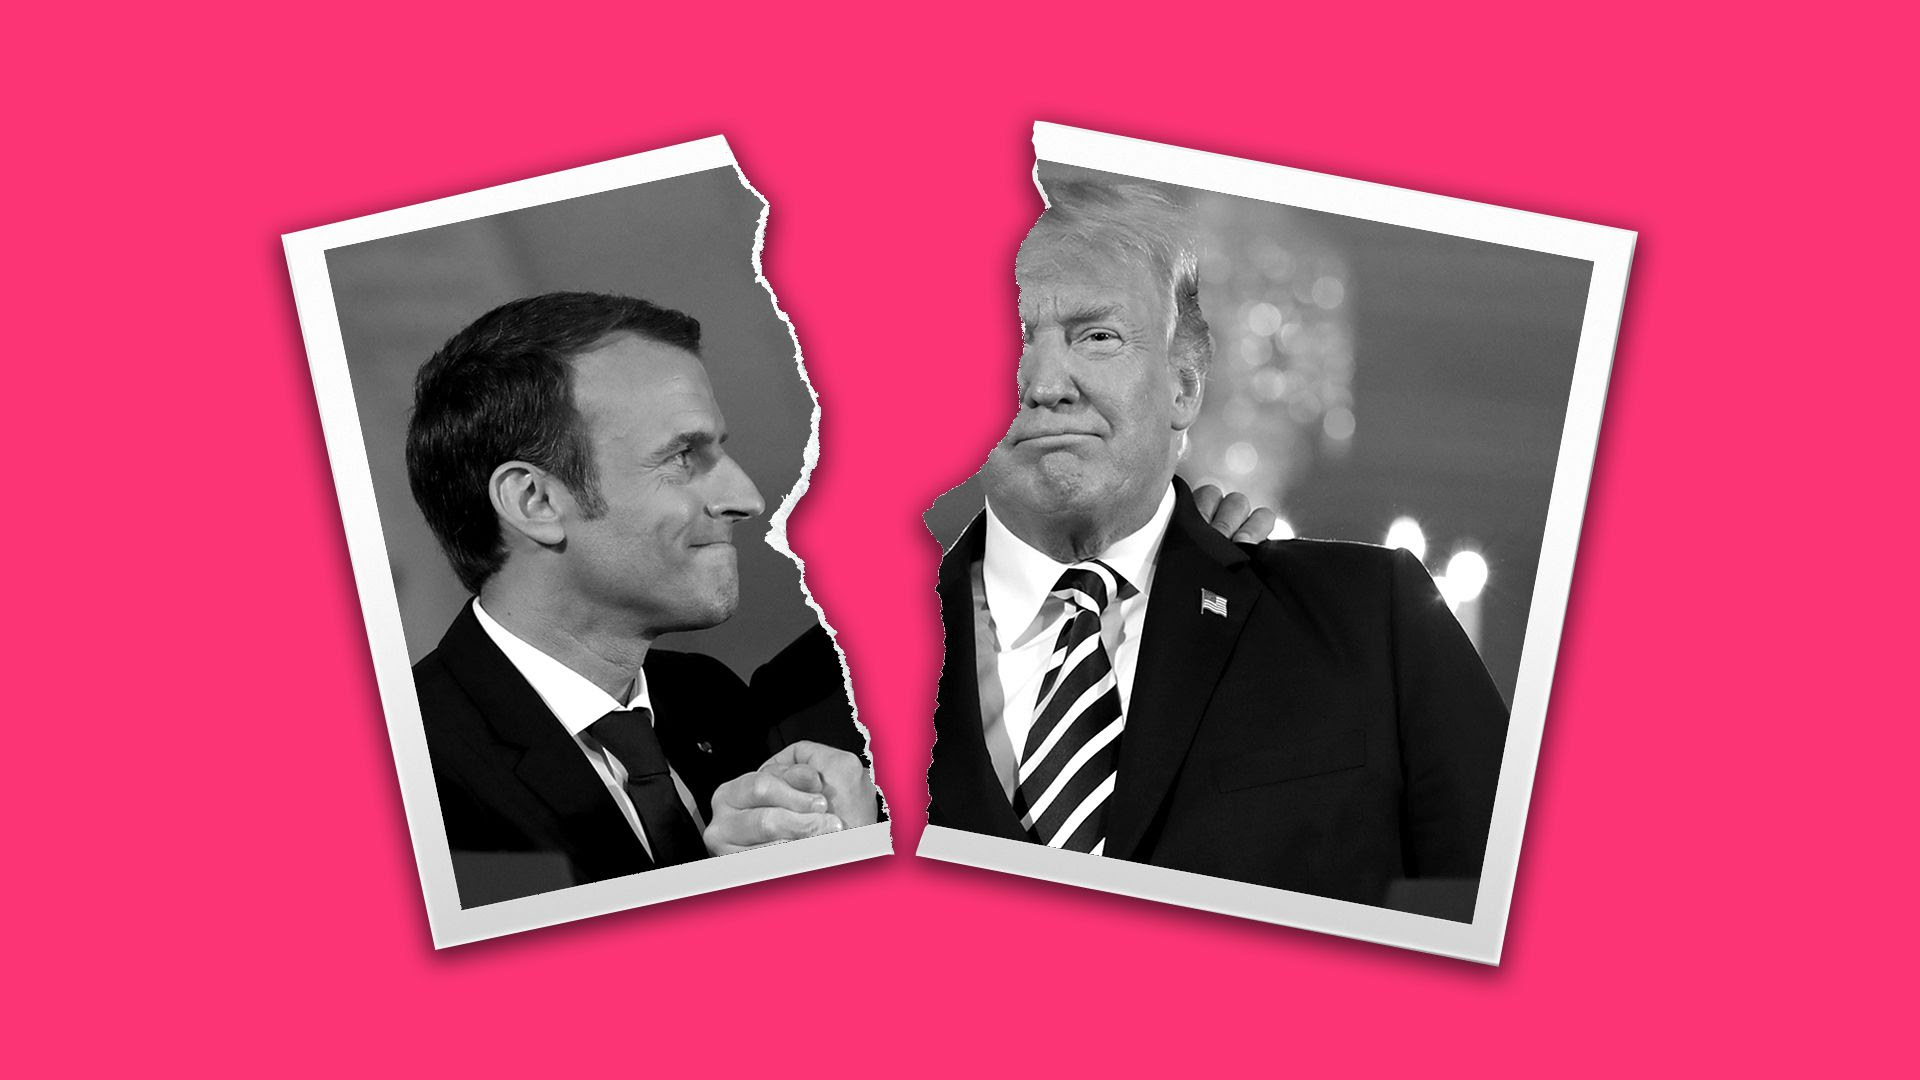 Illustration of torn photo of President Trump and President Macron